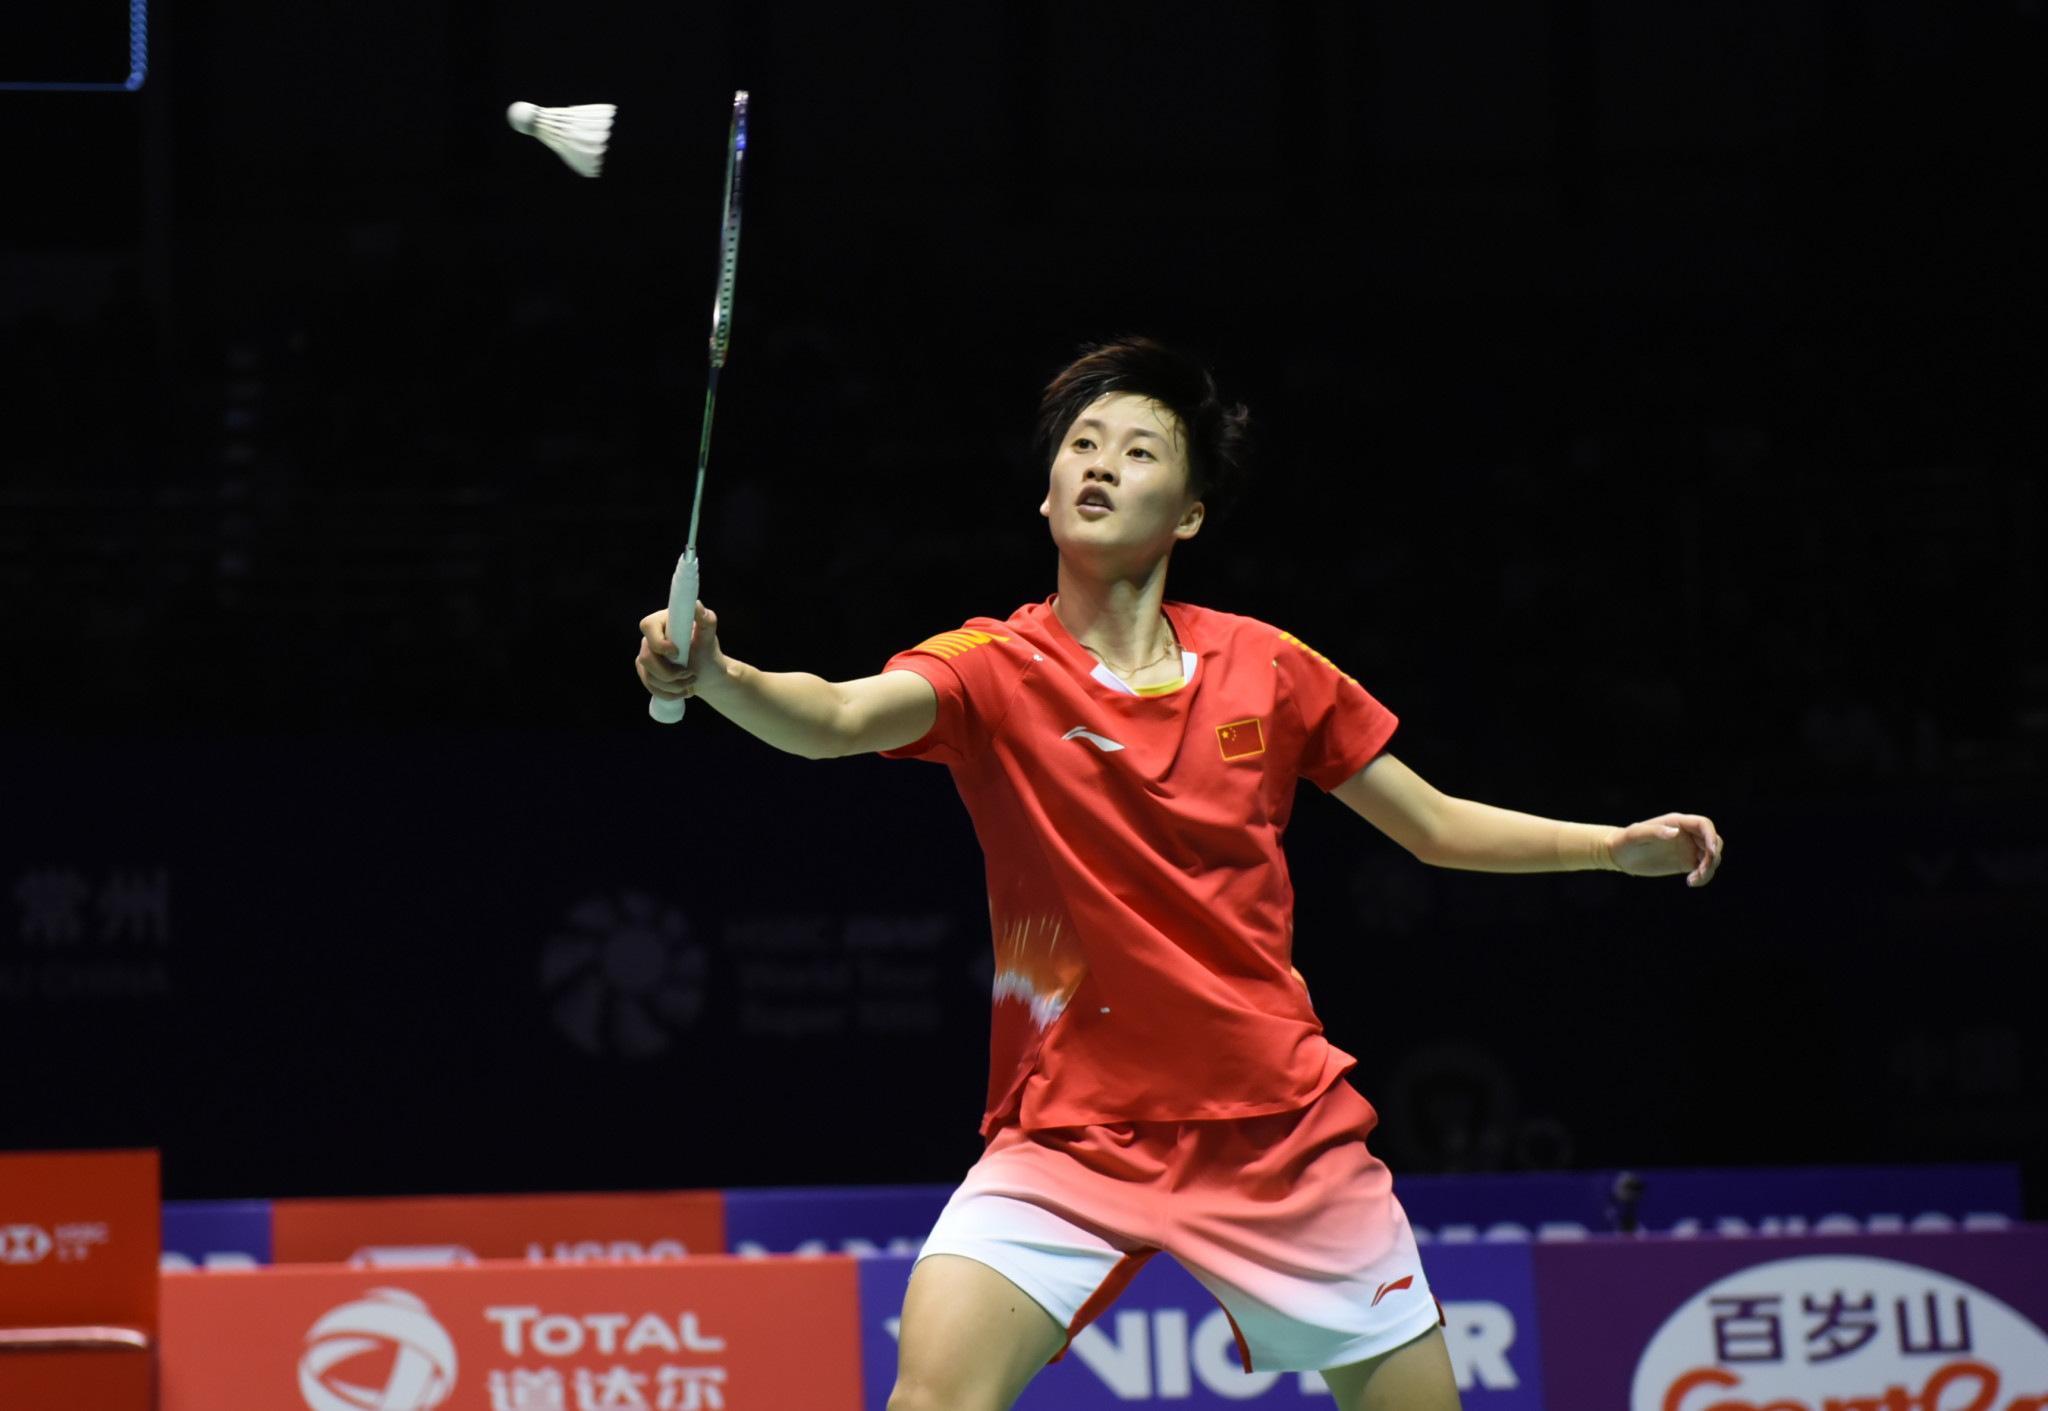 China's Chen Yufei beat Japan's Sayaka Sato to reach the second round of the BWF Fuzhou China Open today ©Getty Images